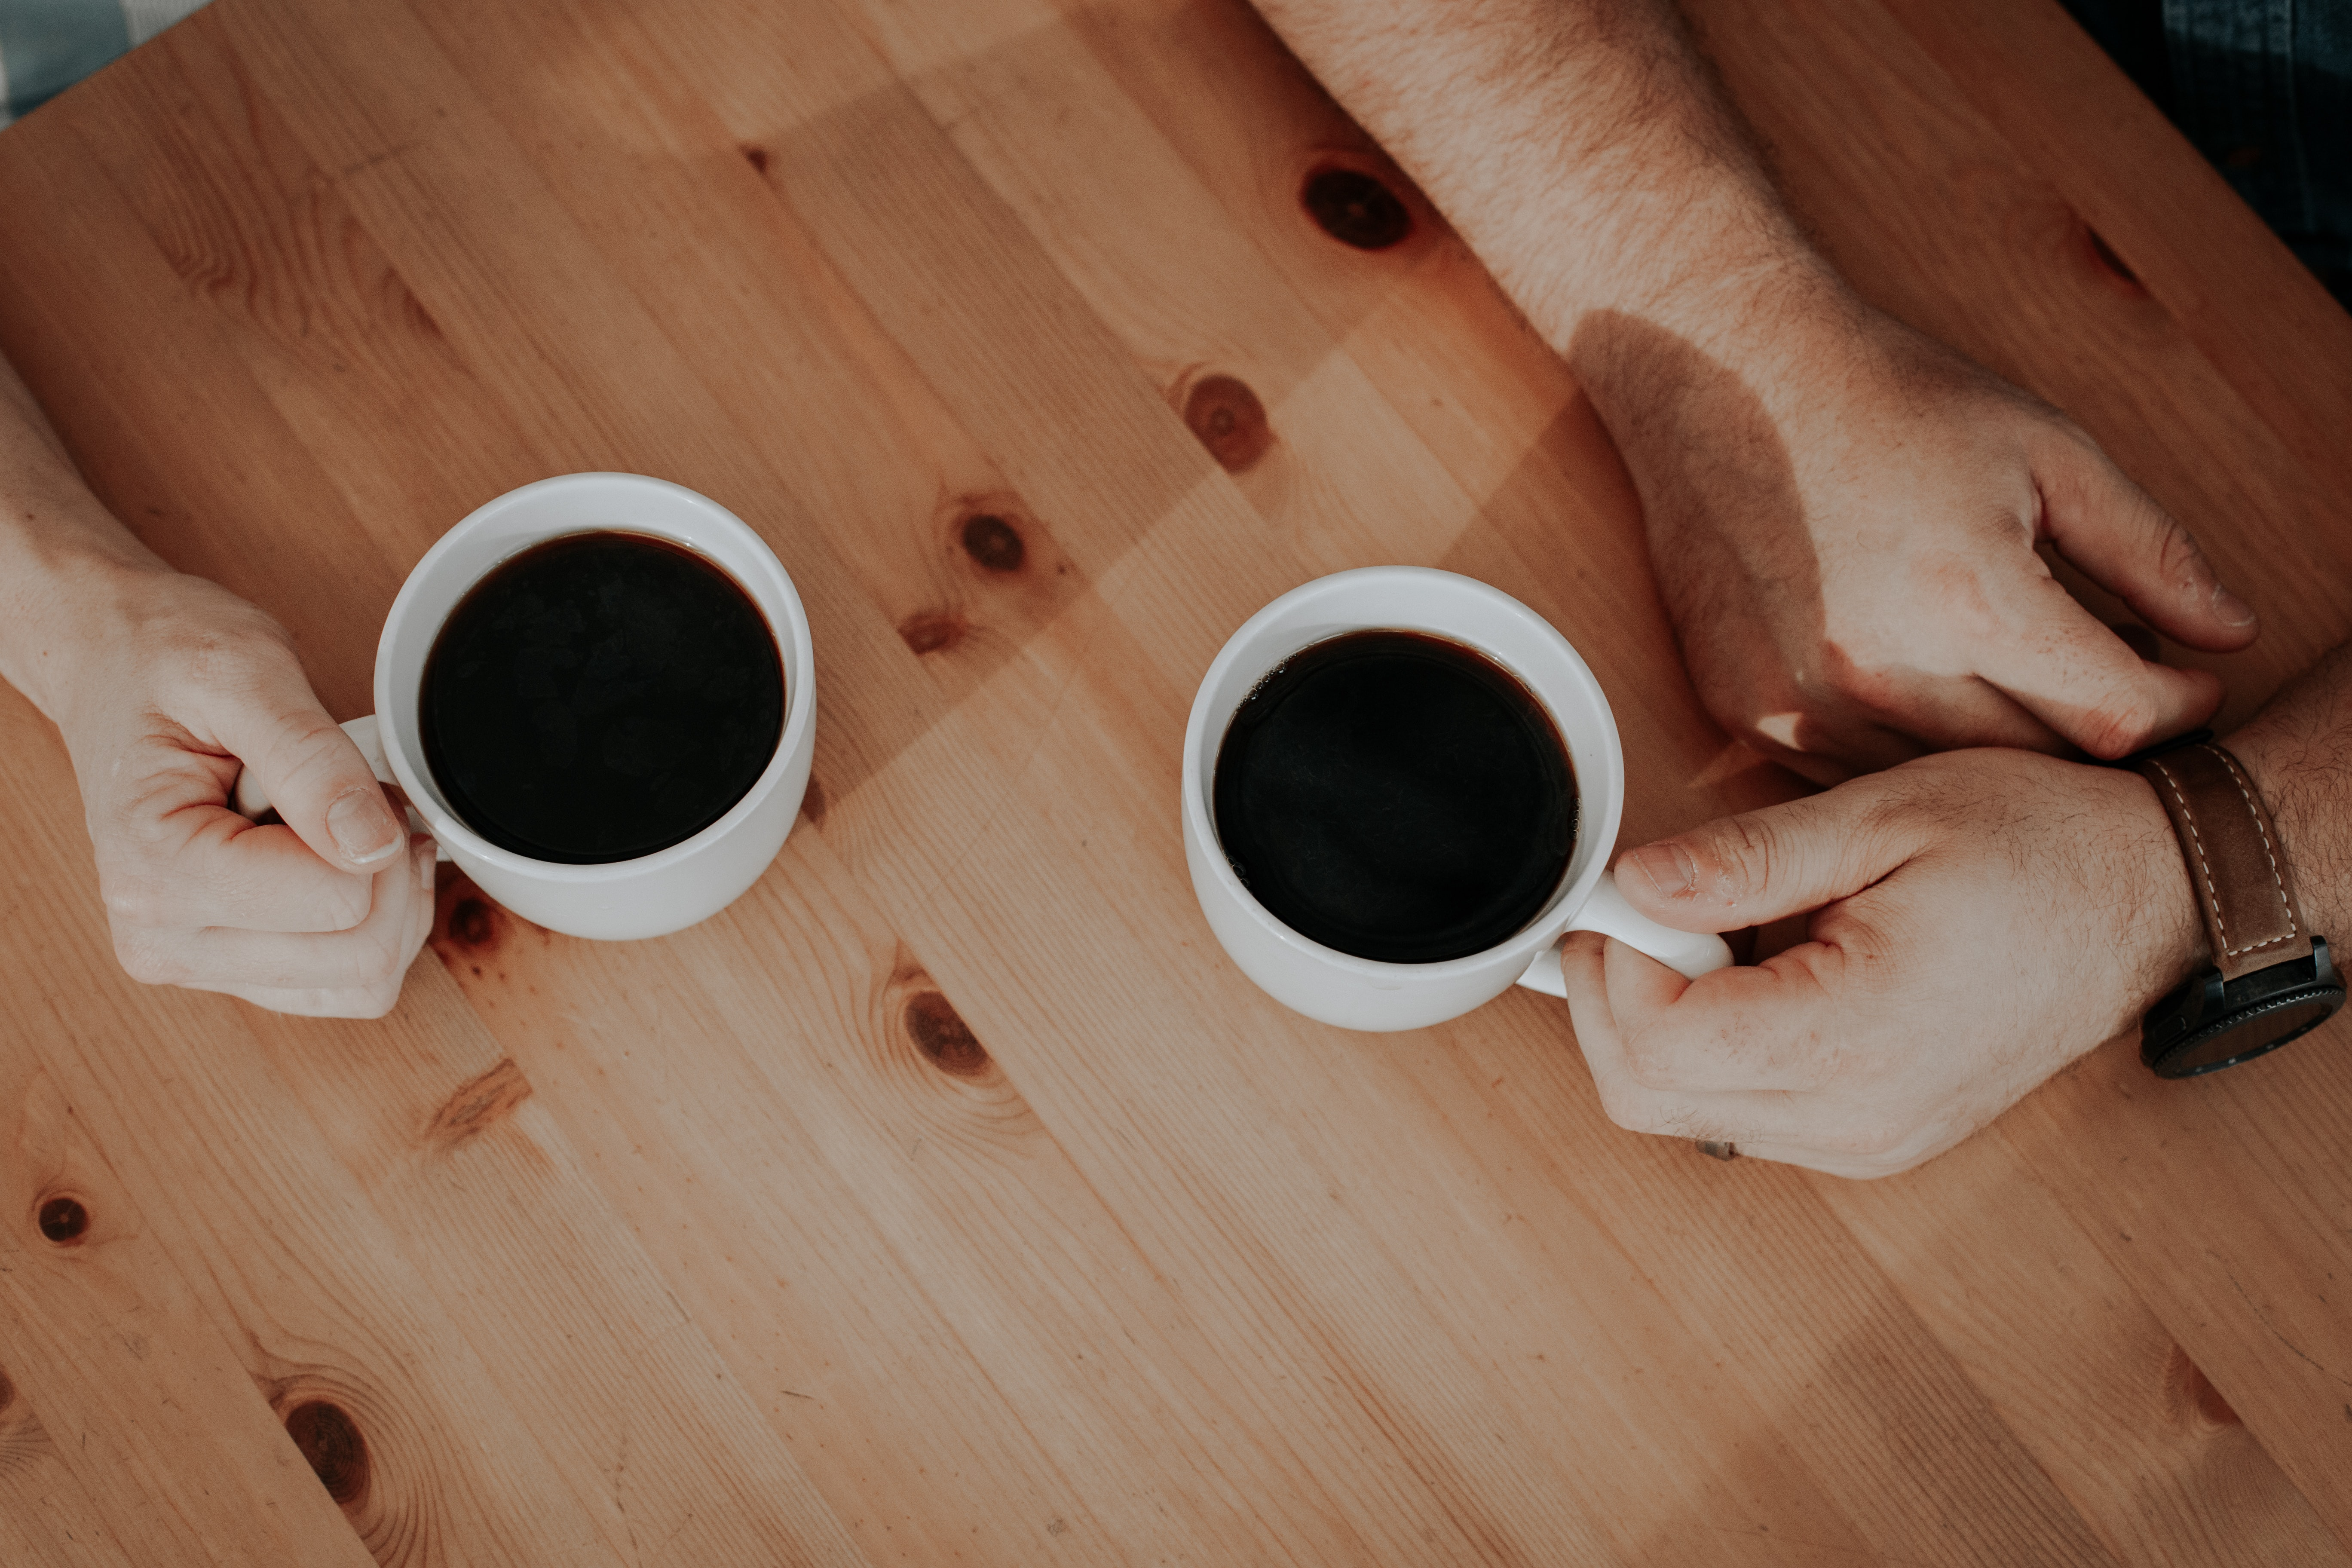 two person holding white mugs filled with coffee's on brown surface